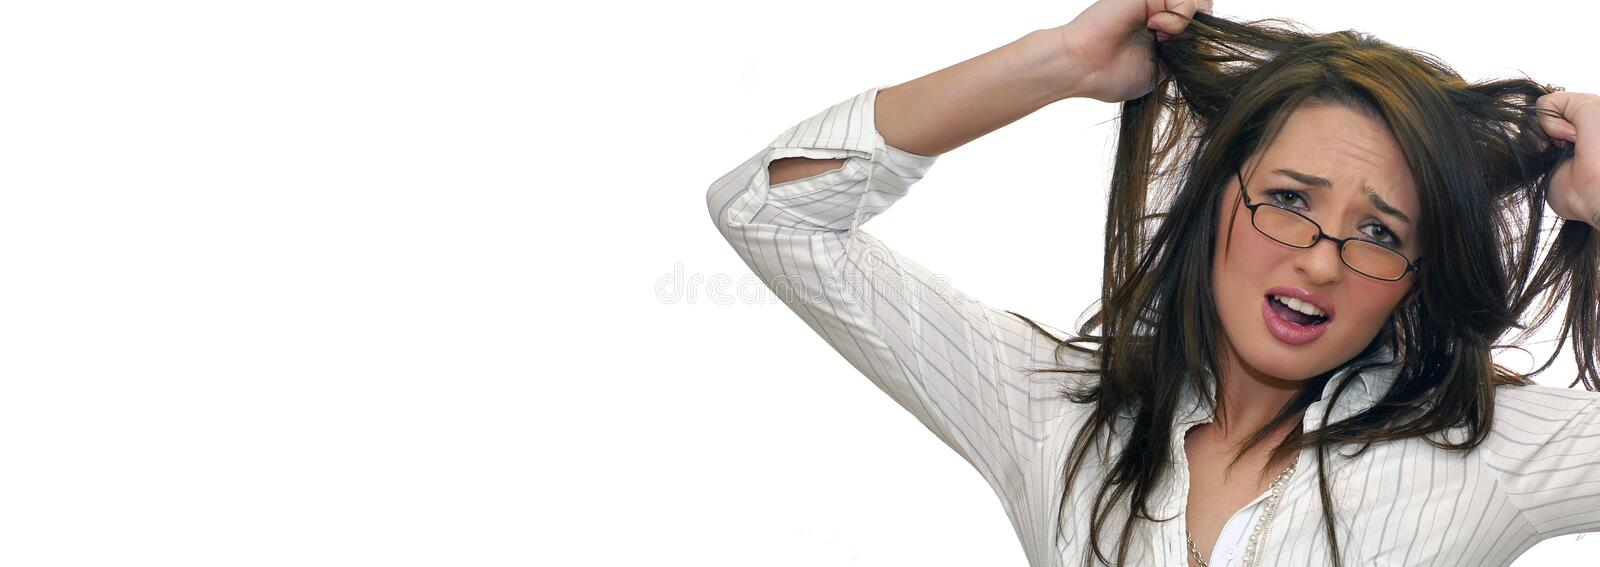 Frustrated woman. Web banner with white background